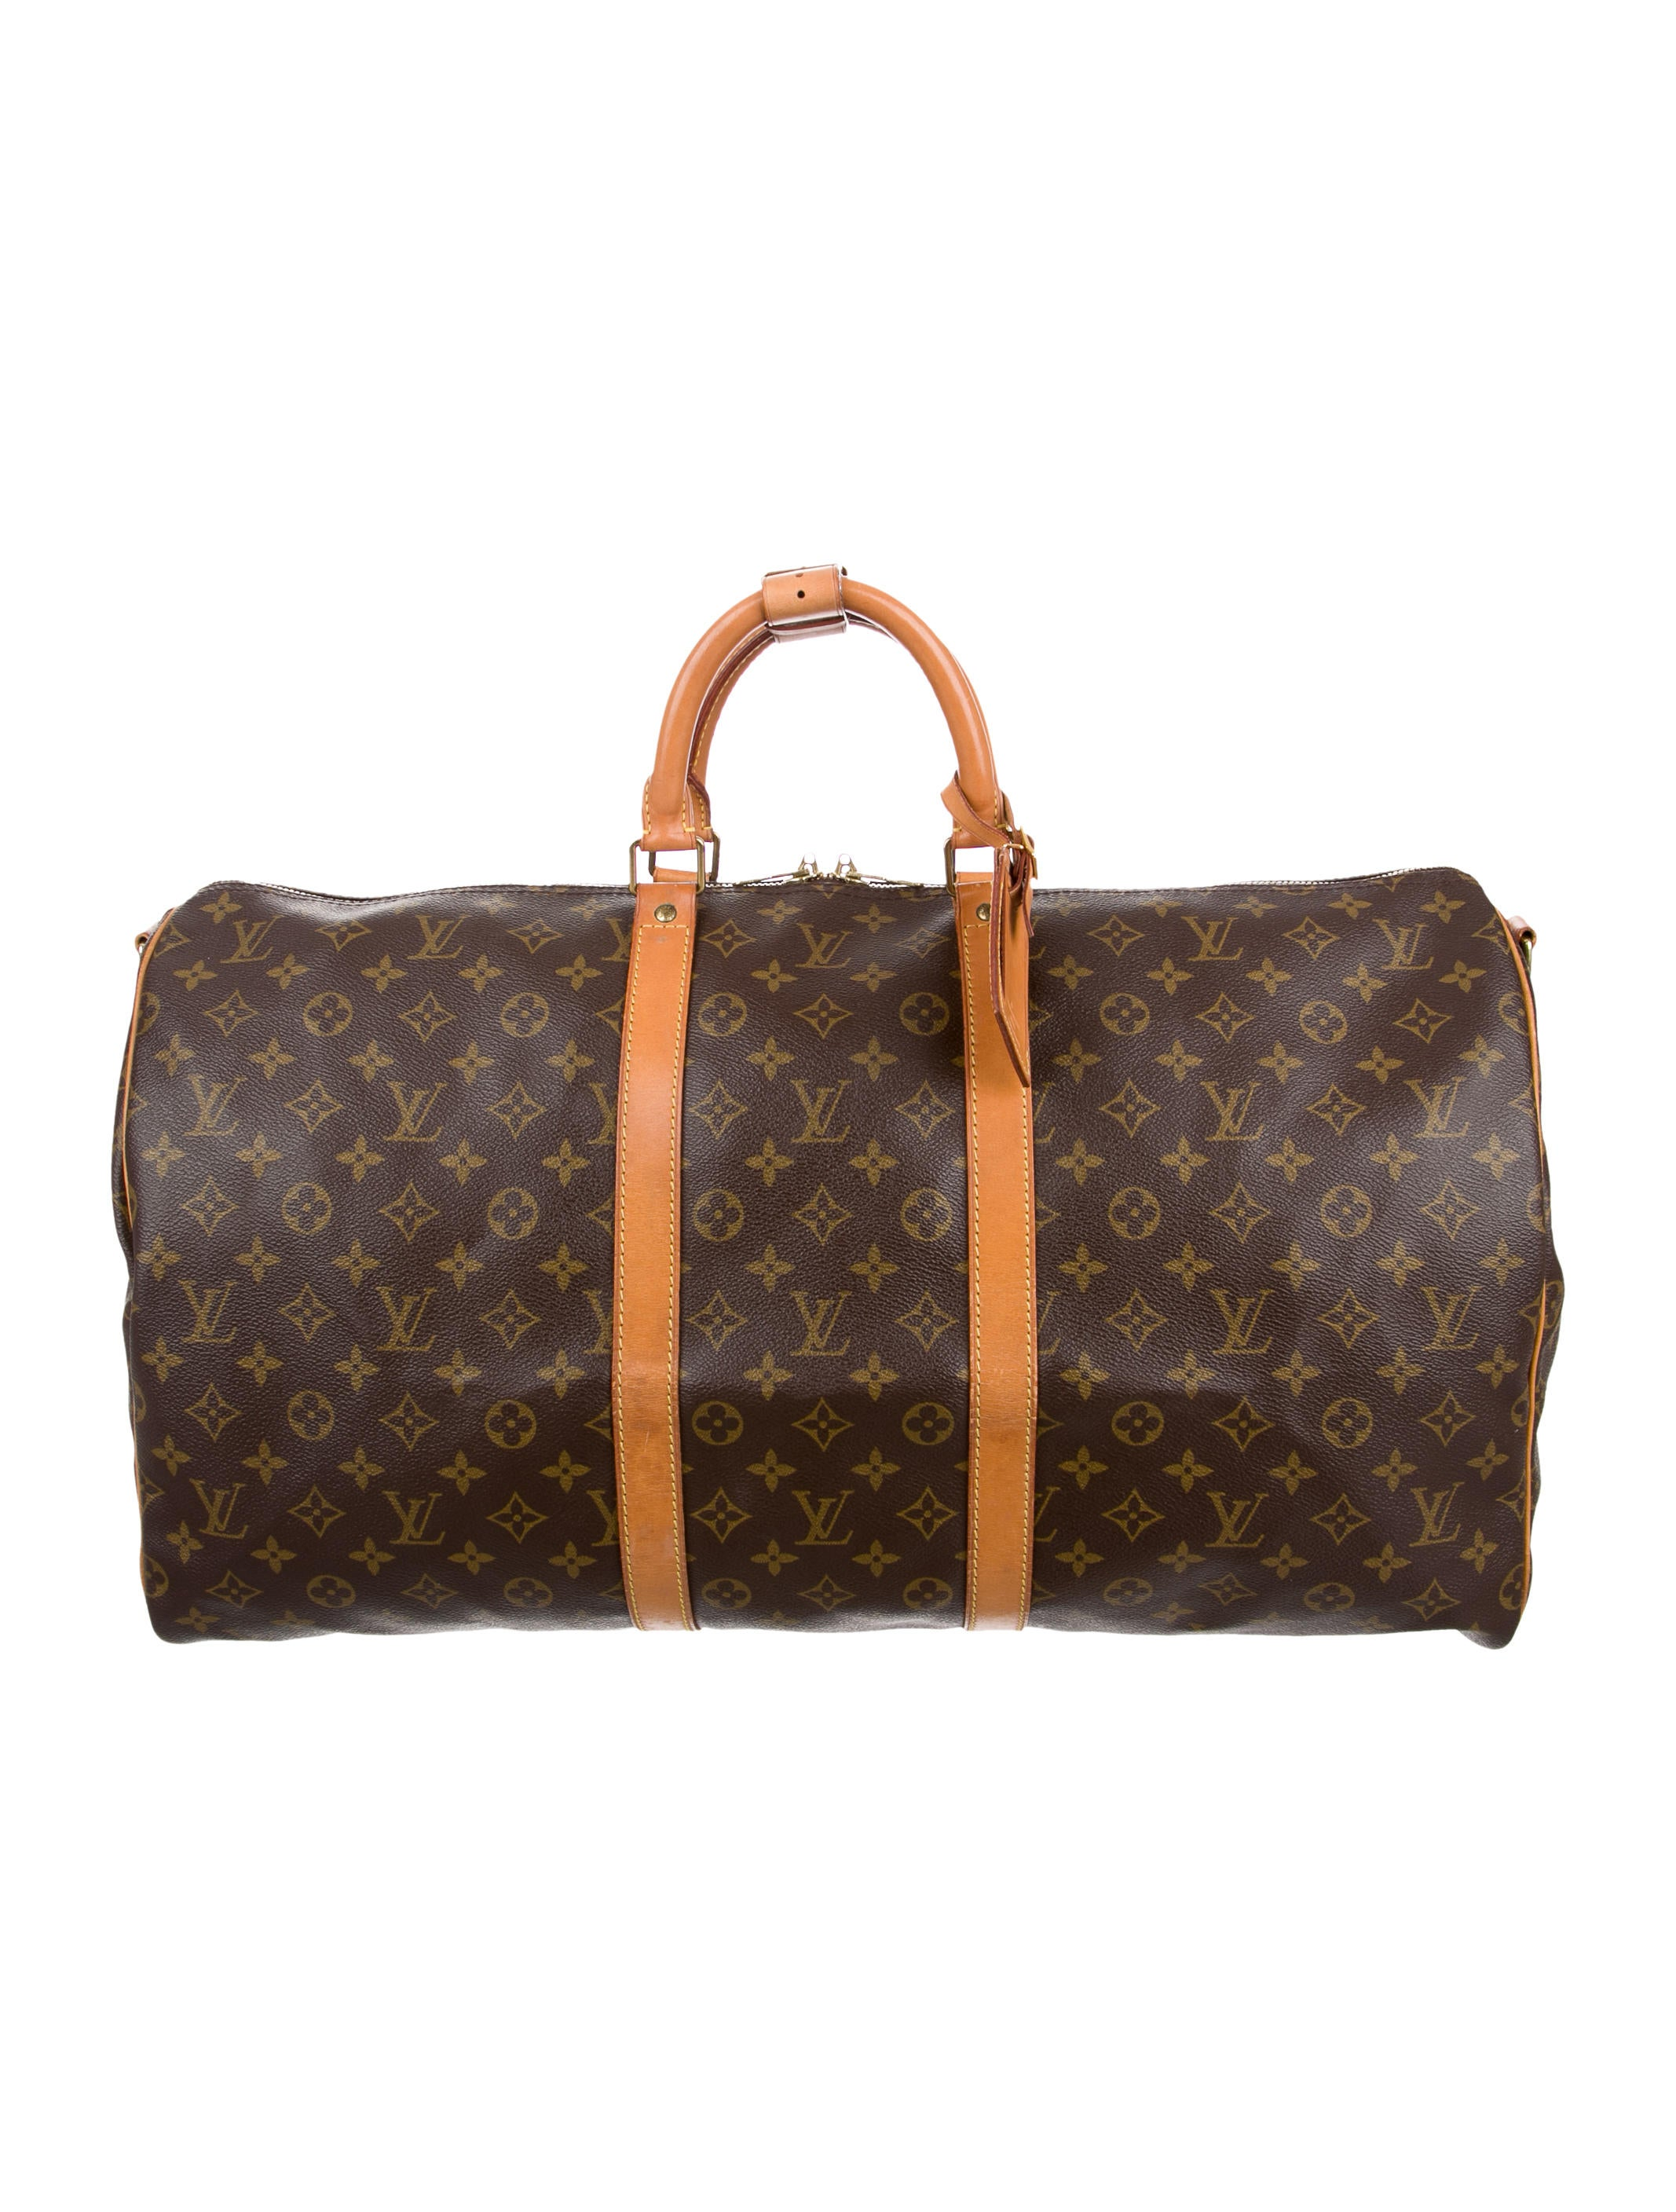 louis vuitton monogram keepall 55 bandouli re bags. Black Bedroom Furniture Sets. Home Design Ideas